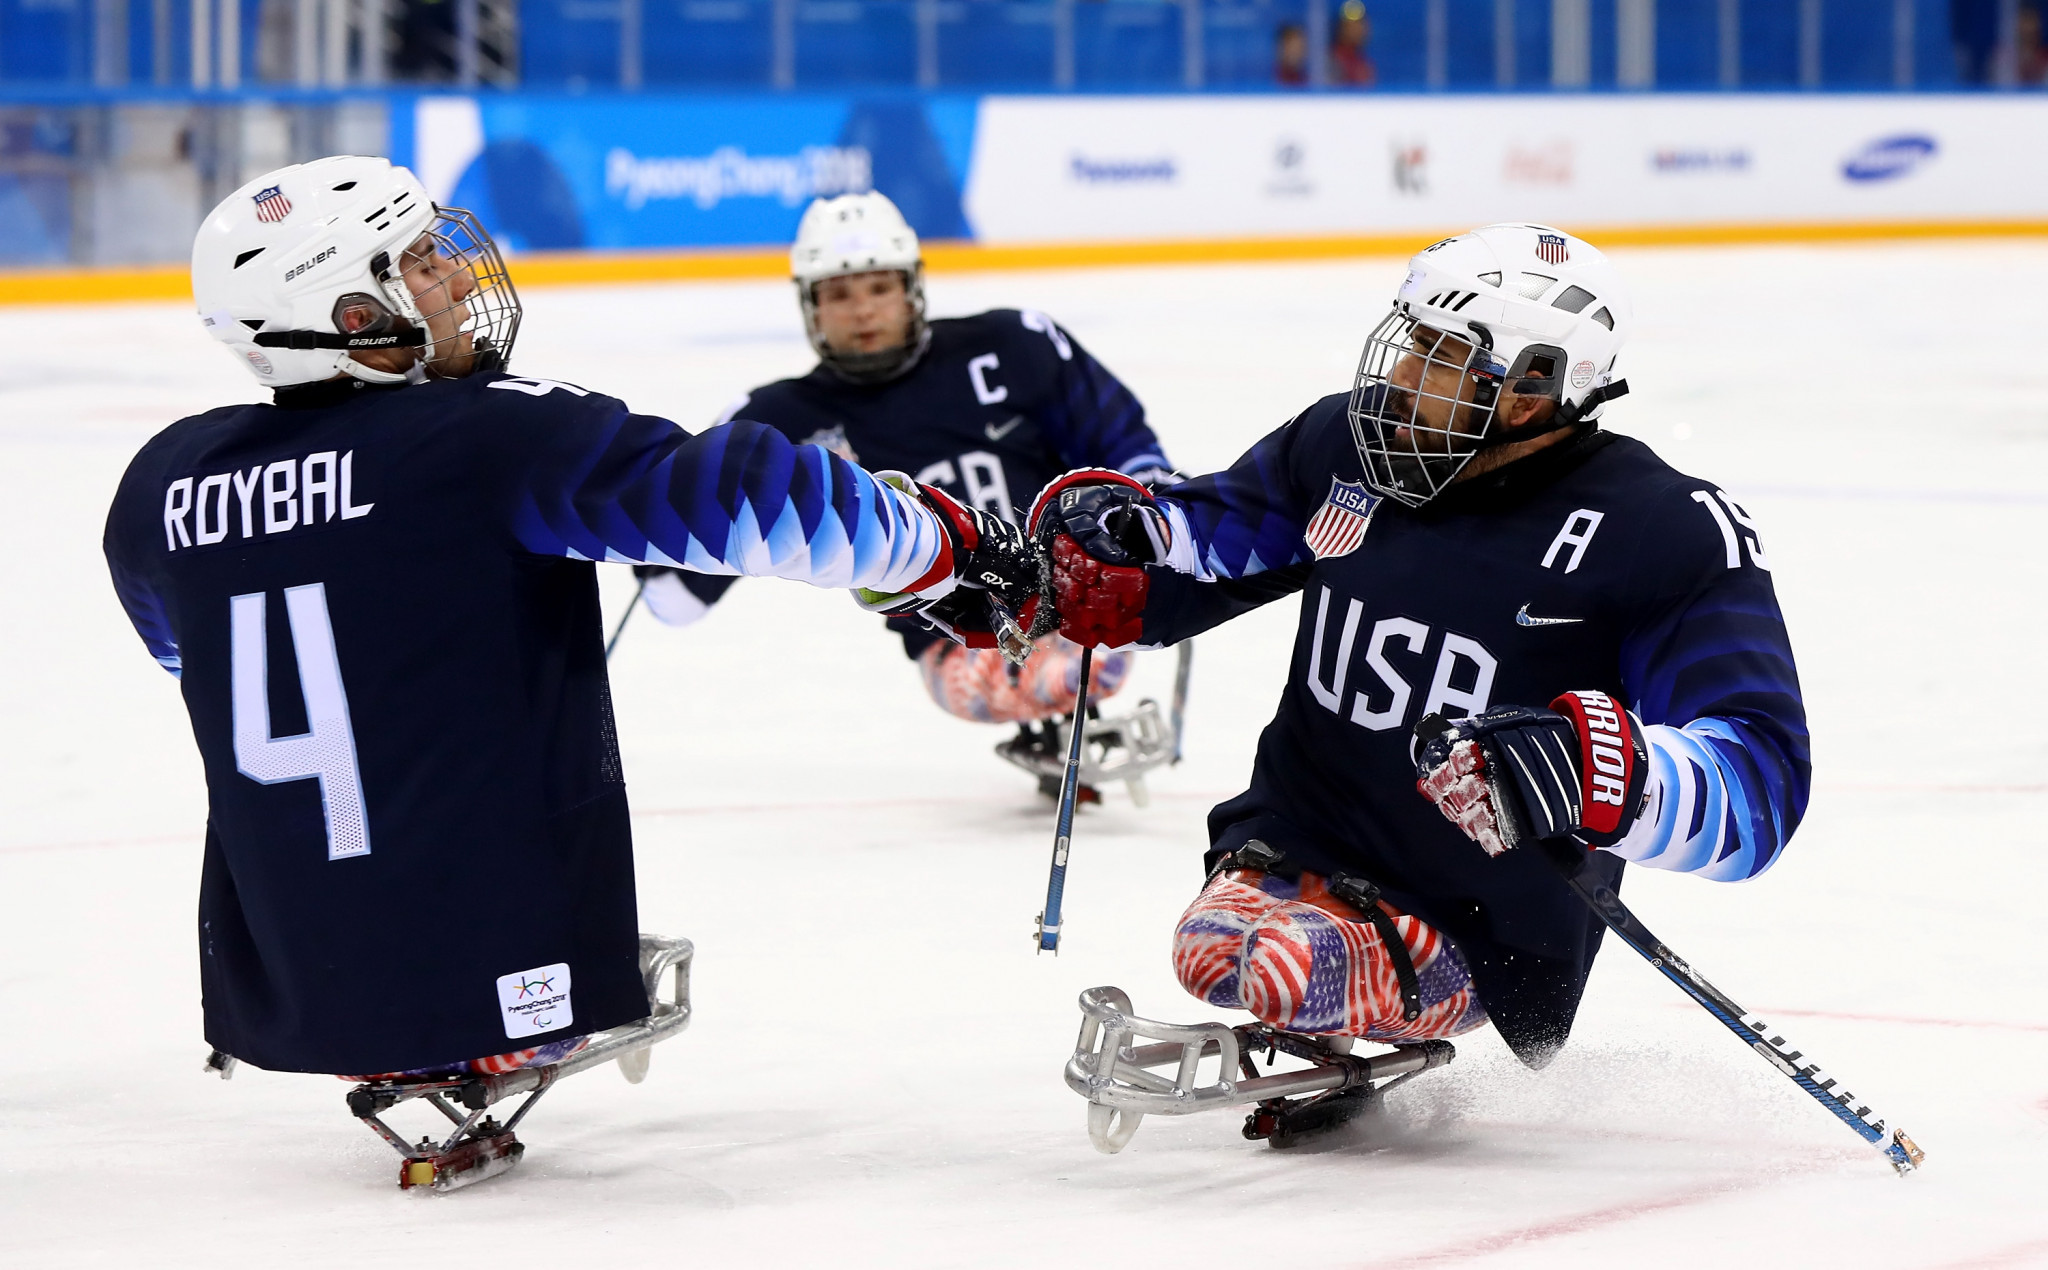 The US recorded a comfortable 10-1 victory over Italy ©Getty Images